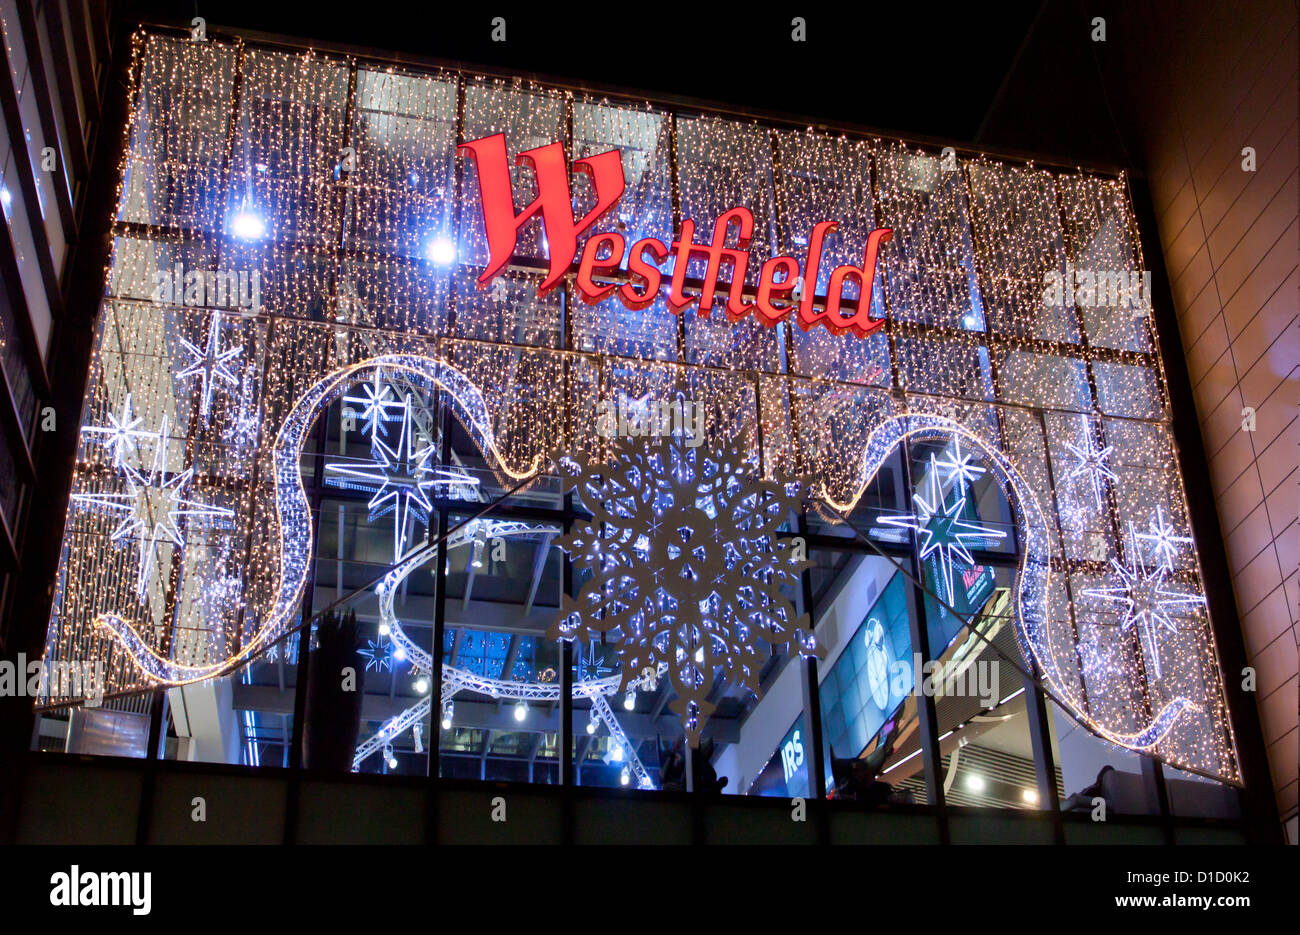 Westfield Shopping Centre Stratford Shopping Centre London Christmas Lighting  Sales - Stock Image